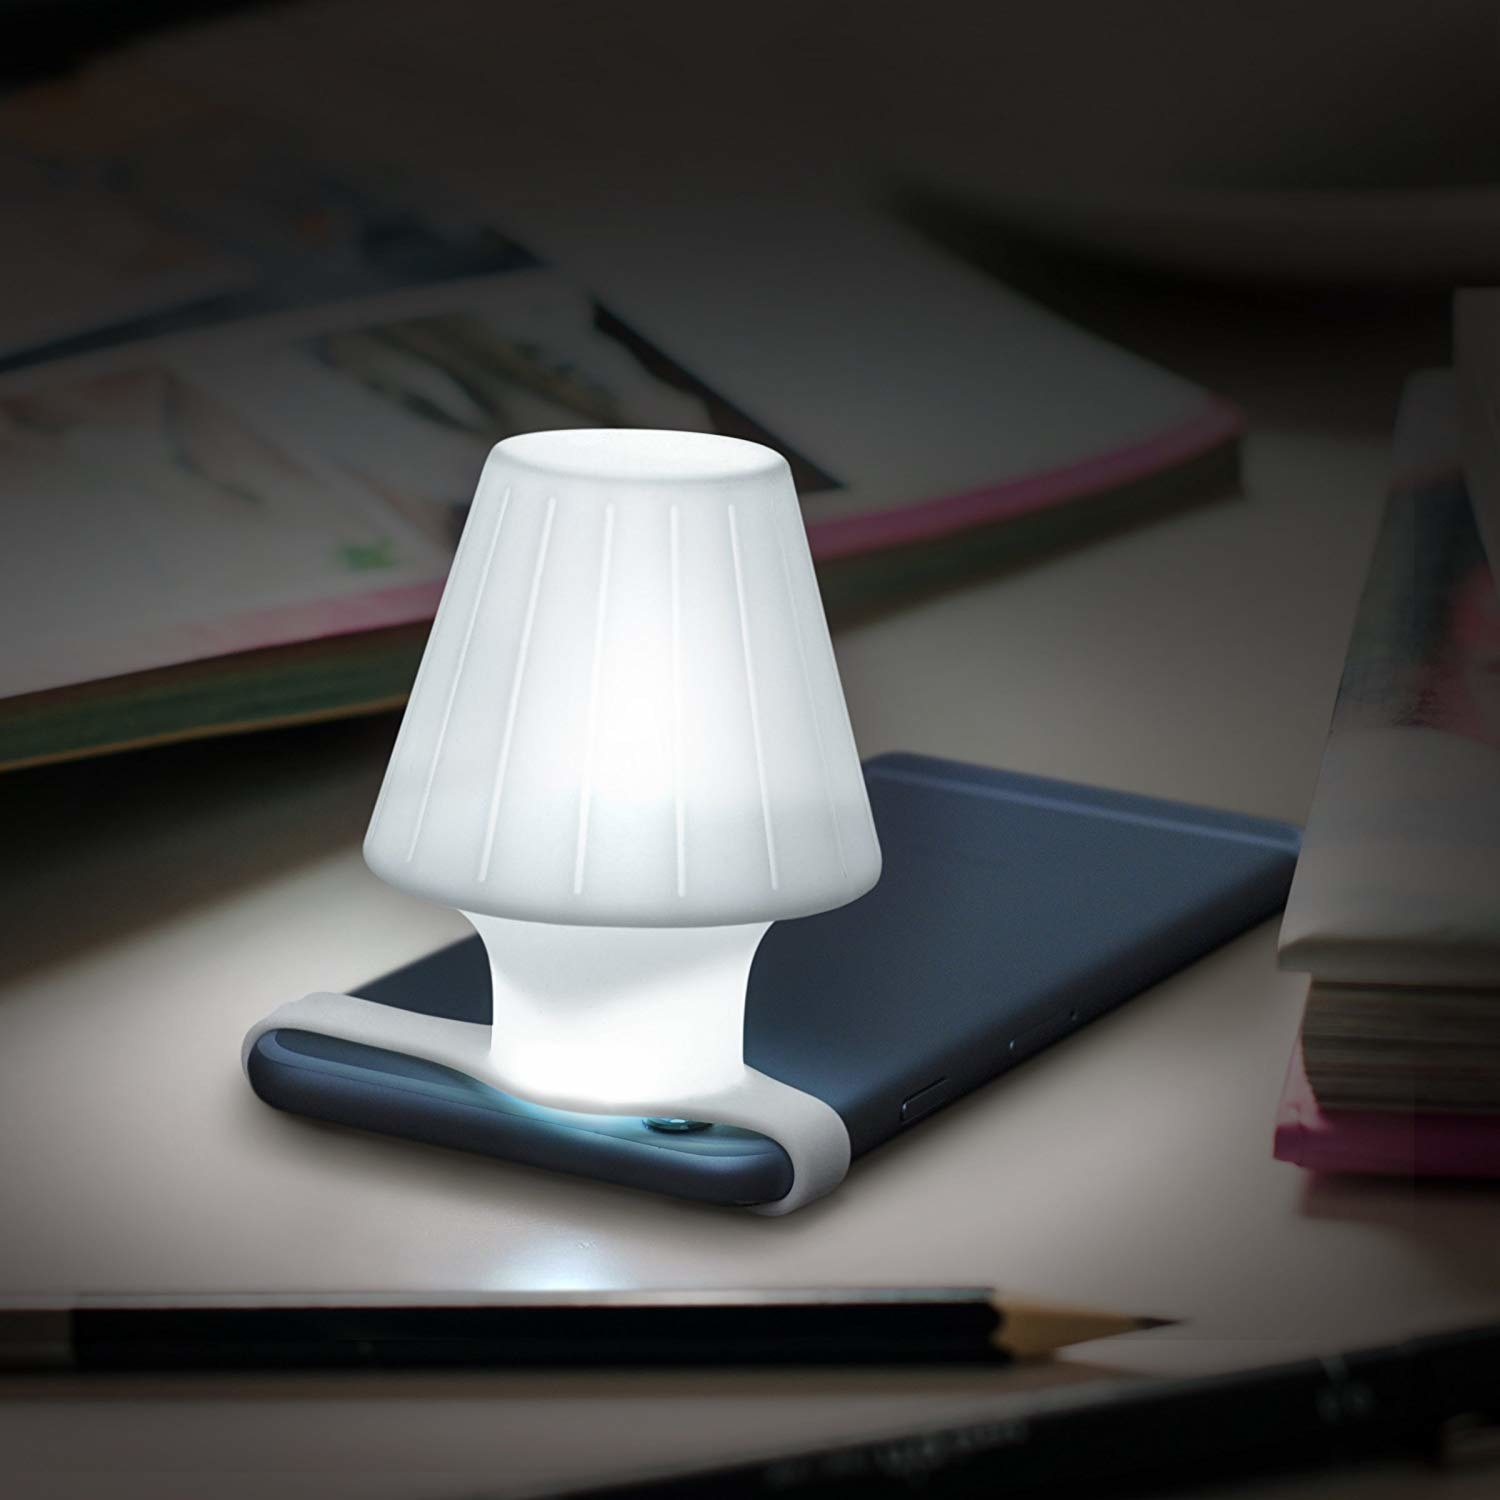 lamp-style attachment on mobile phone that makes the phone flashlight much brighter